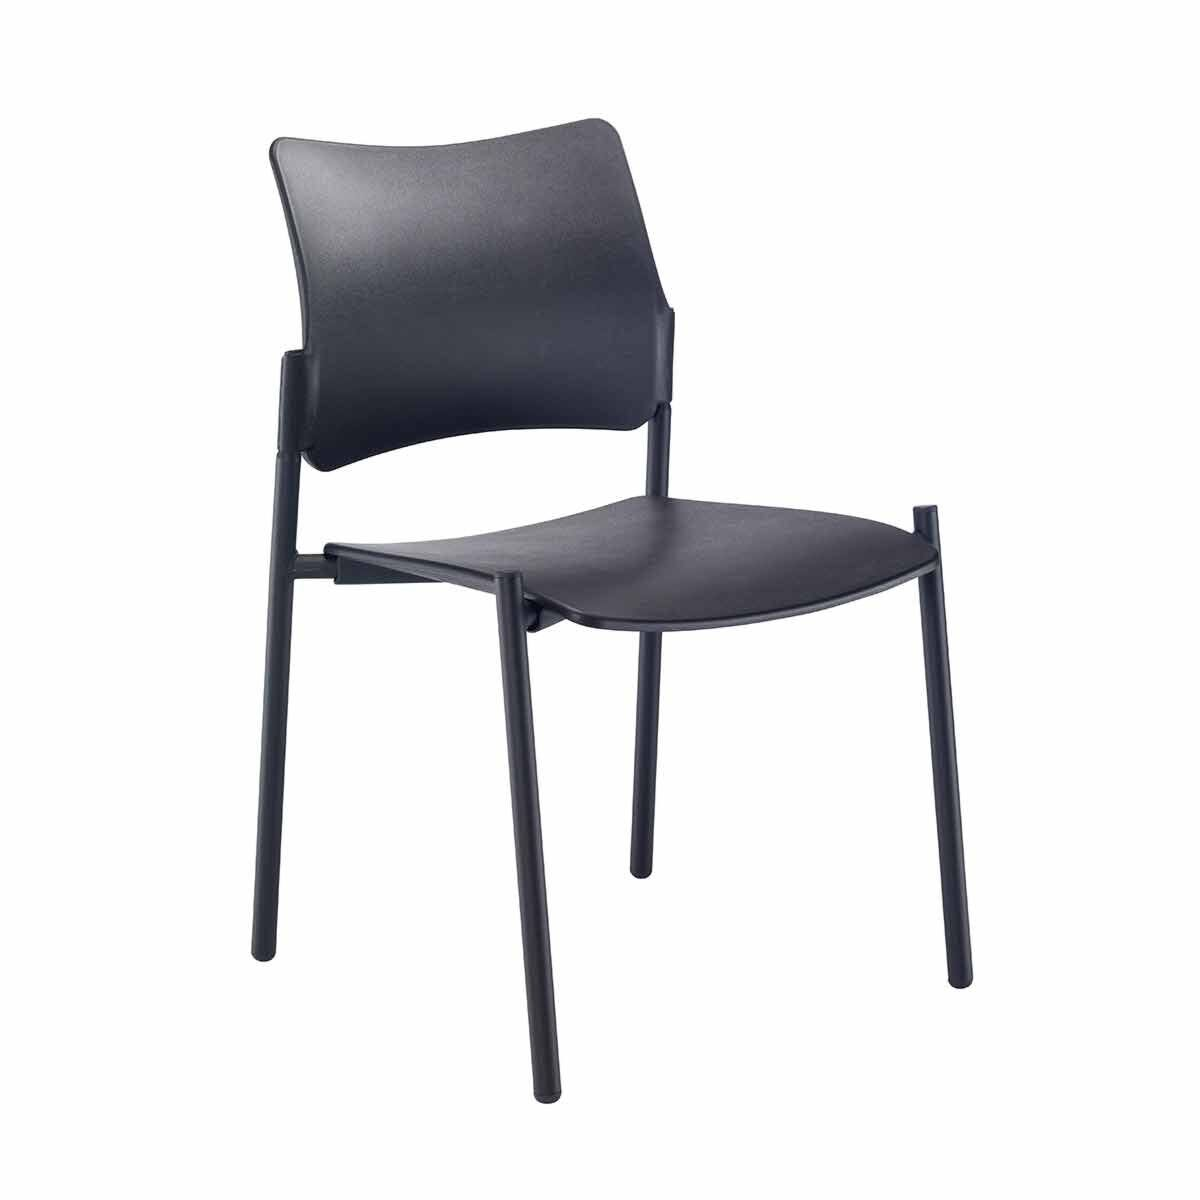 TC Office Florence Plastic Side Chair with Black Frame